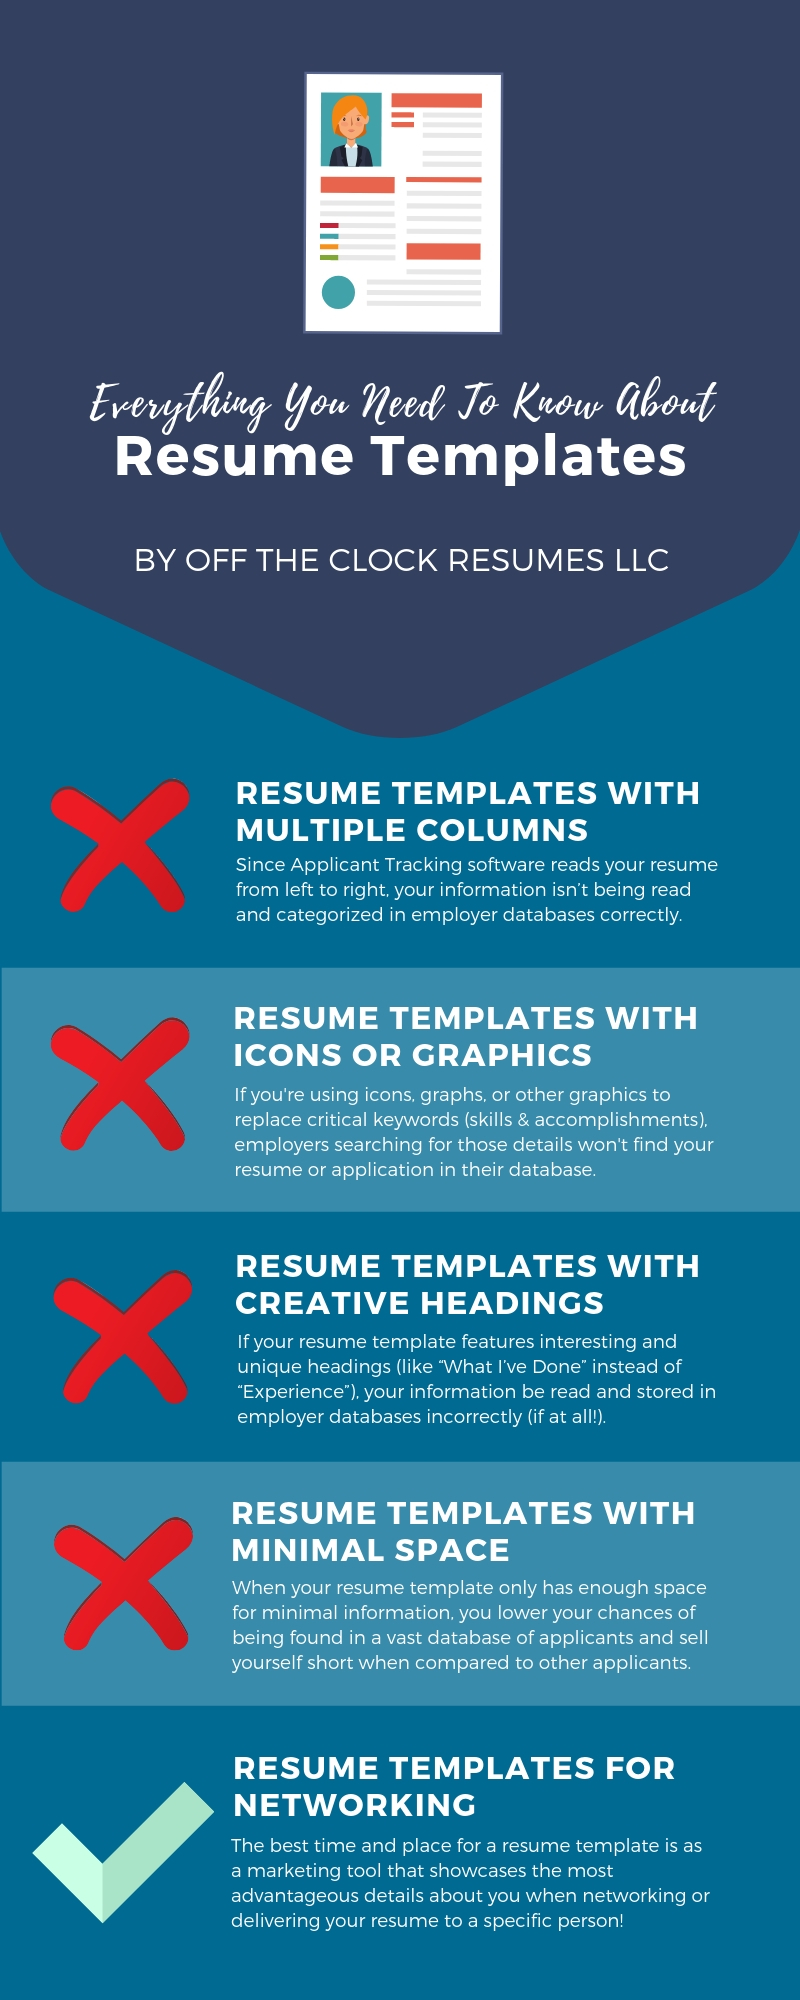 Everything You Need To Know About Resume Templates [Infographic] | Off The Clock Resumes LLC